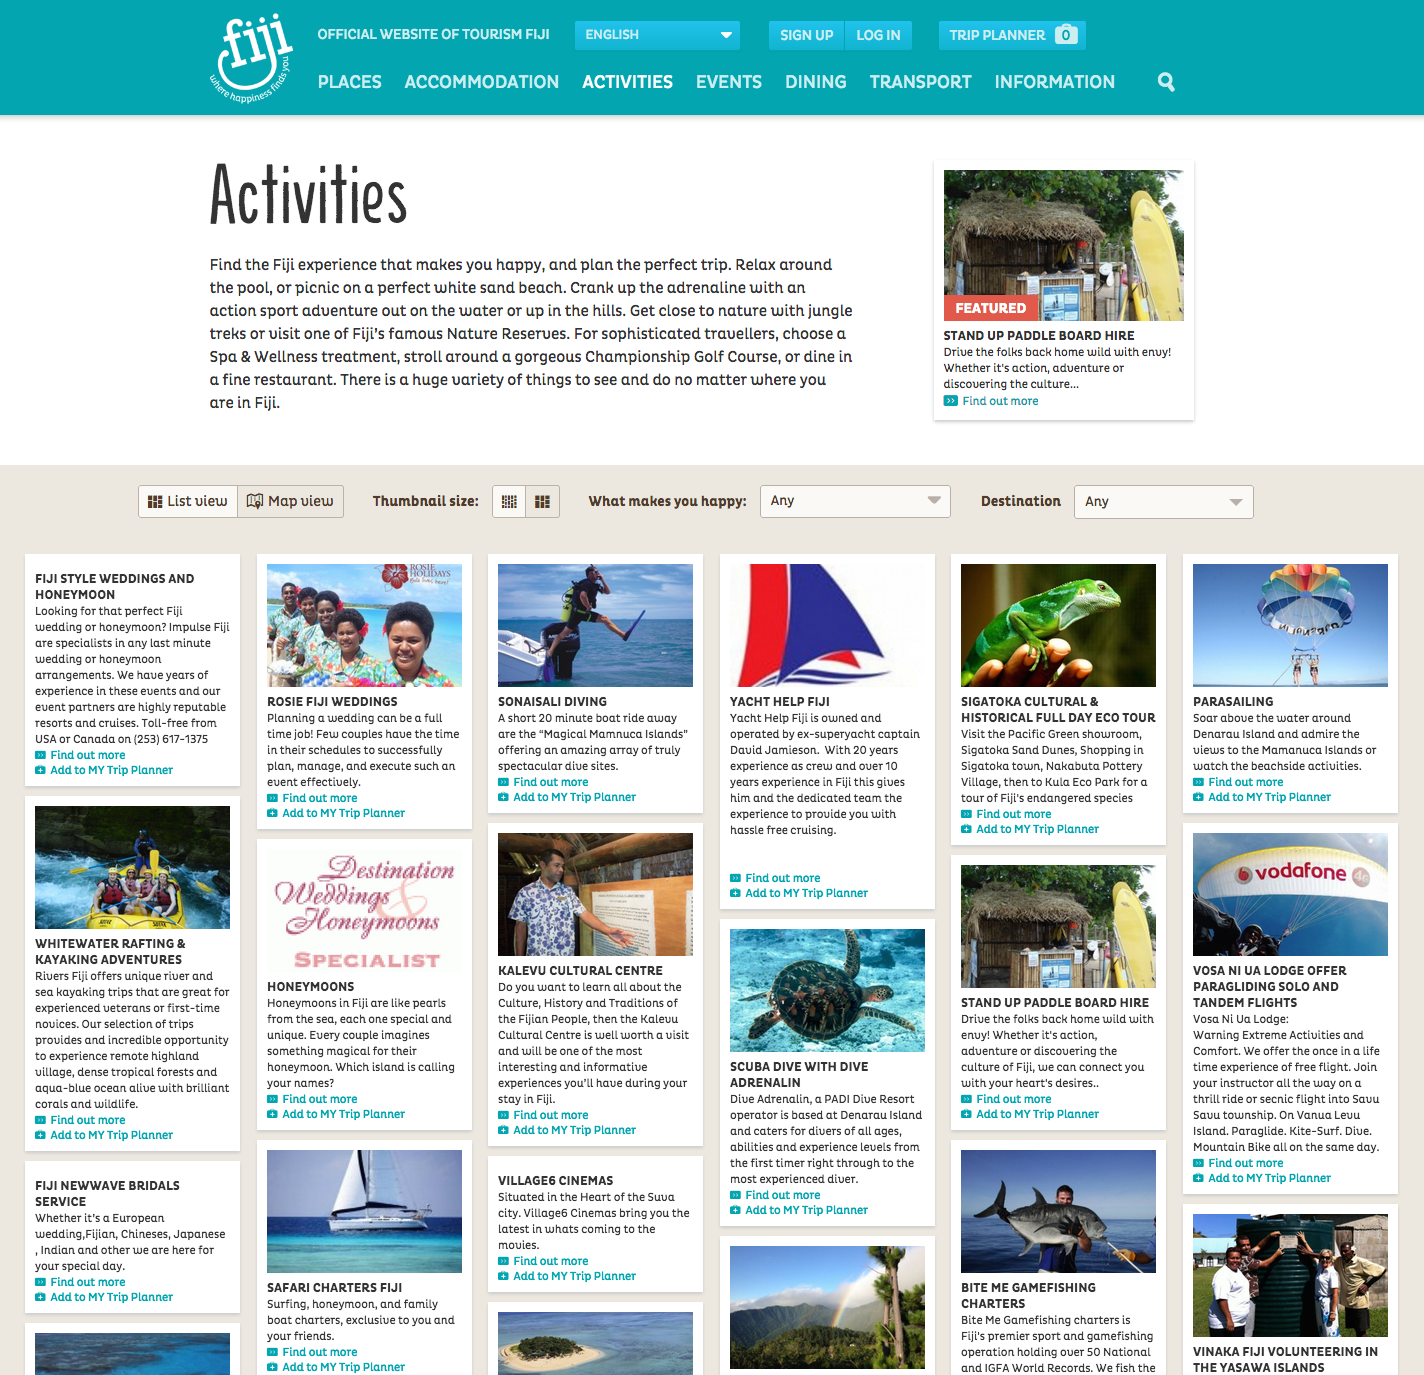 Fiji.travel activities landing page w/ teasers